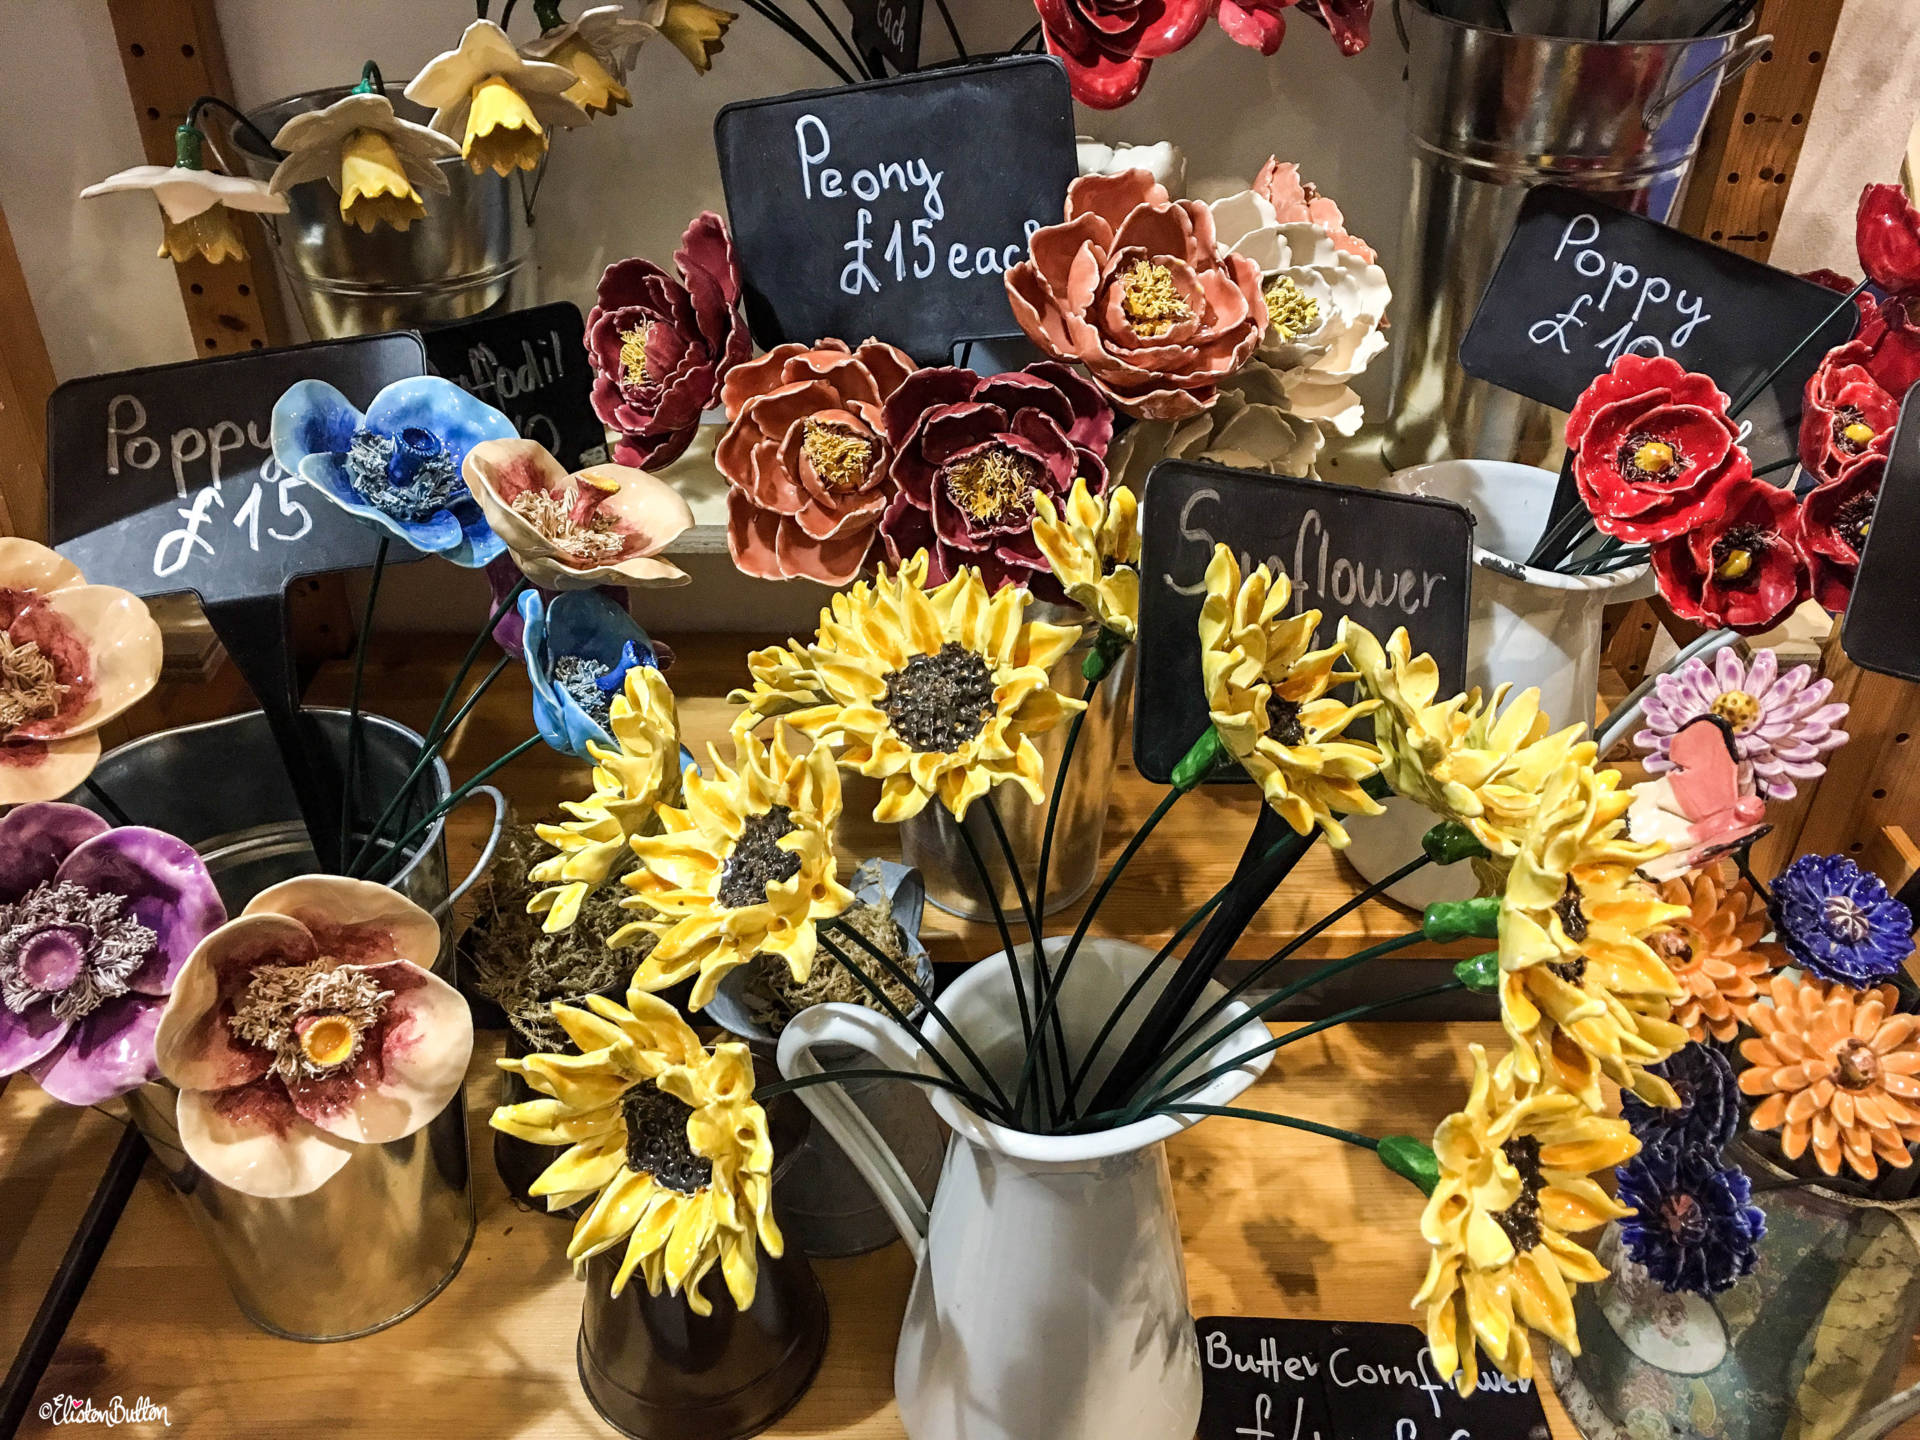 Ceramic Painted Flowers at the Carneol Glass Stand at Grand Designs Live 2017 with Eliston Button - Grand Designs Live 2017 – Part Two at www.elistonbutton.com - Eliston Button - That Crafty Kid – Art, Design, Craft & Adventure.